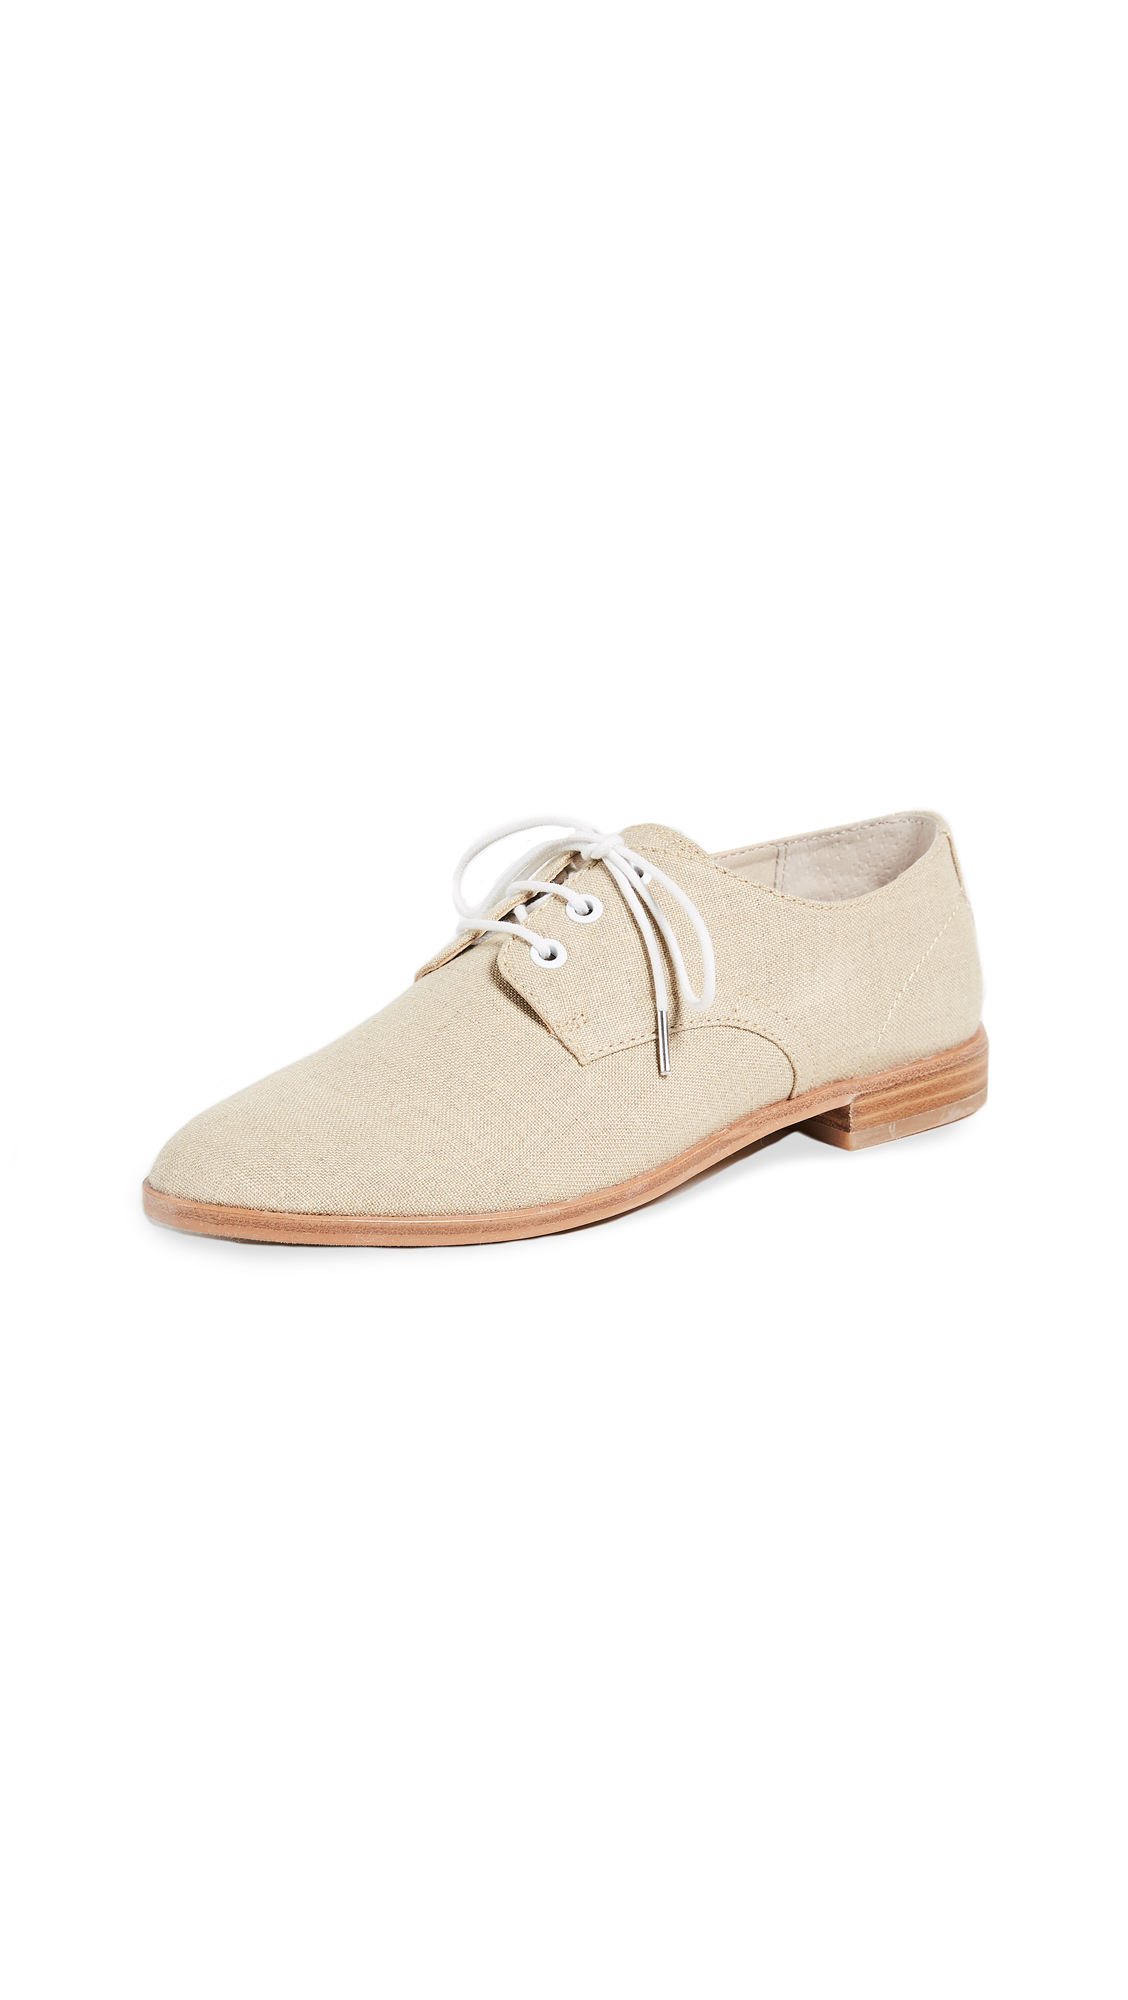 Dolce Vita Pixyl Lace Up Oxfords - Natural Multi